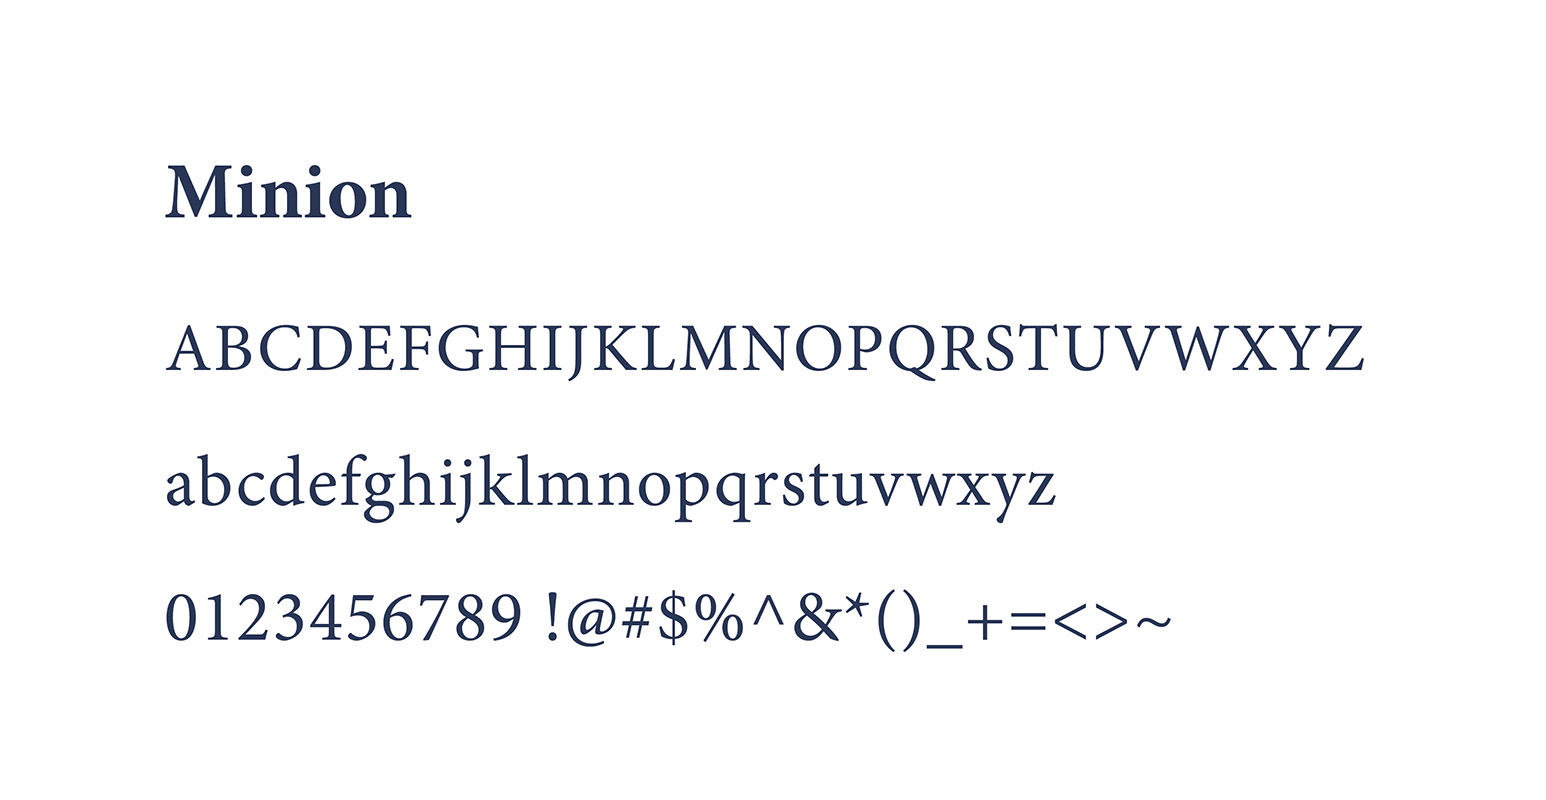 When it comes to legibility in print, it's hard to go wrong with Minion for body copy.